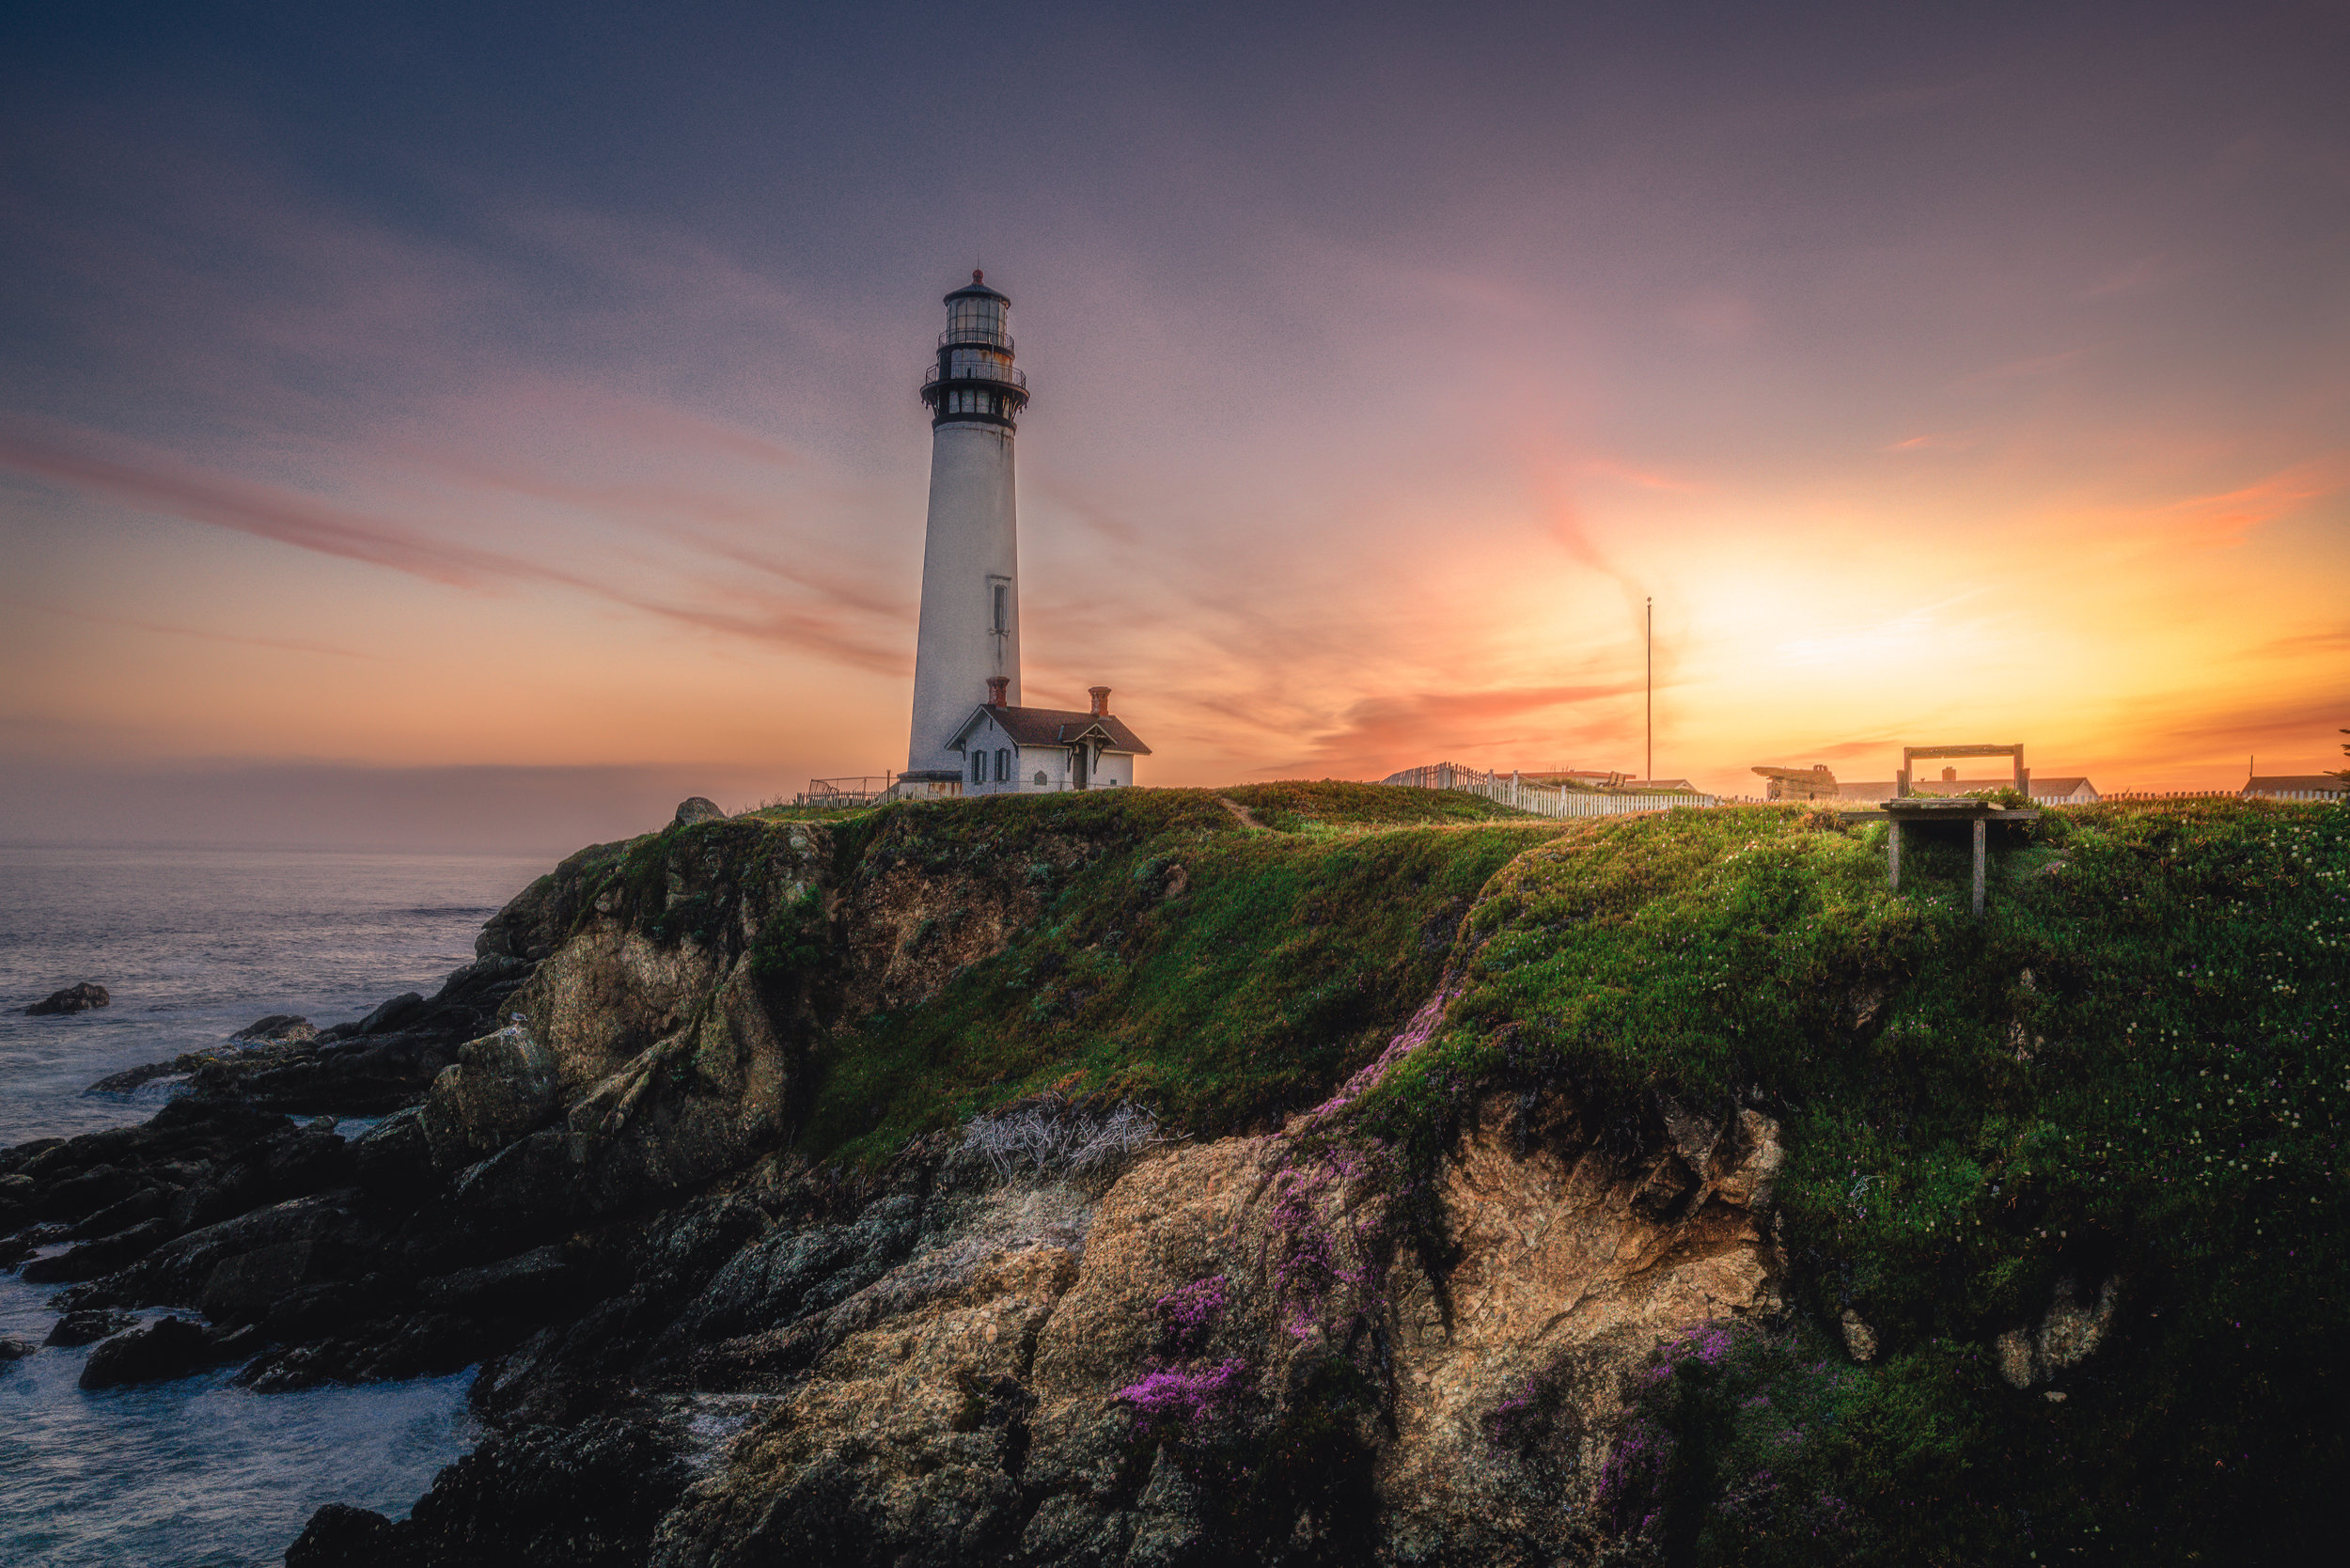 Pigeon Point Lighthouse 2019 Buhay Photography